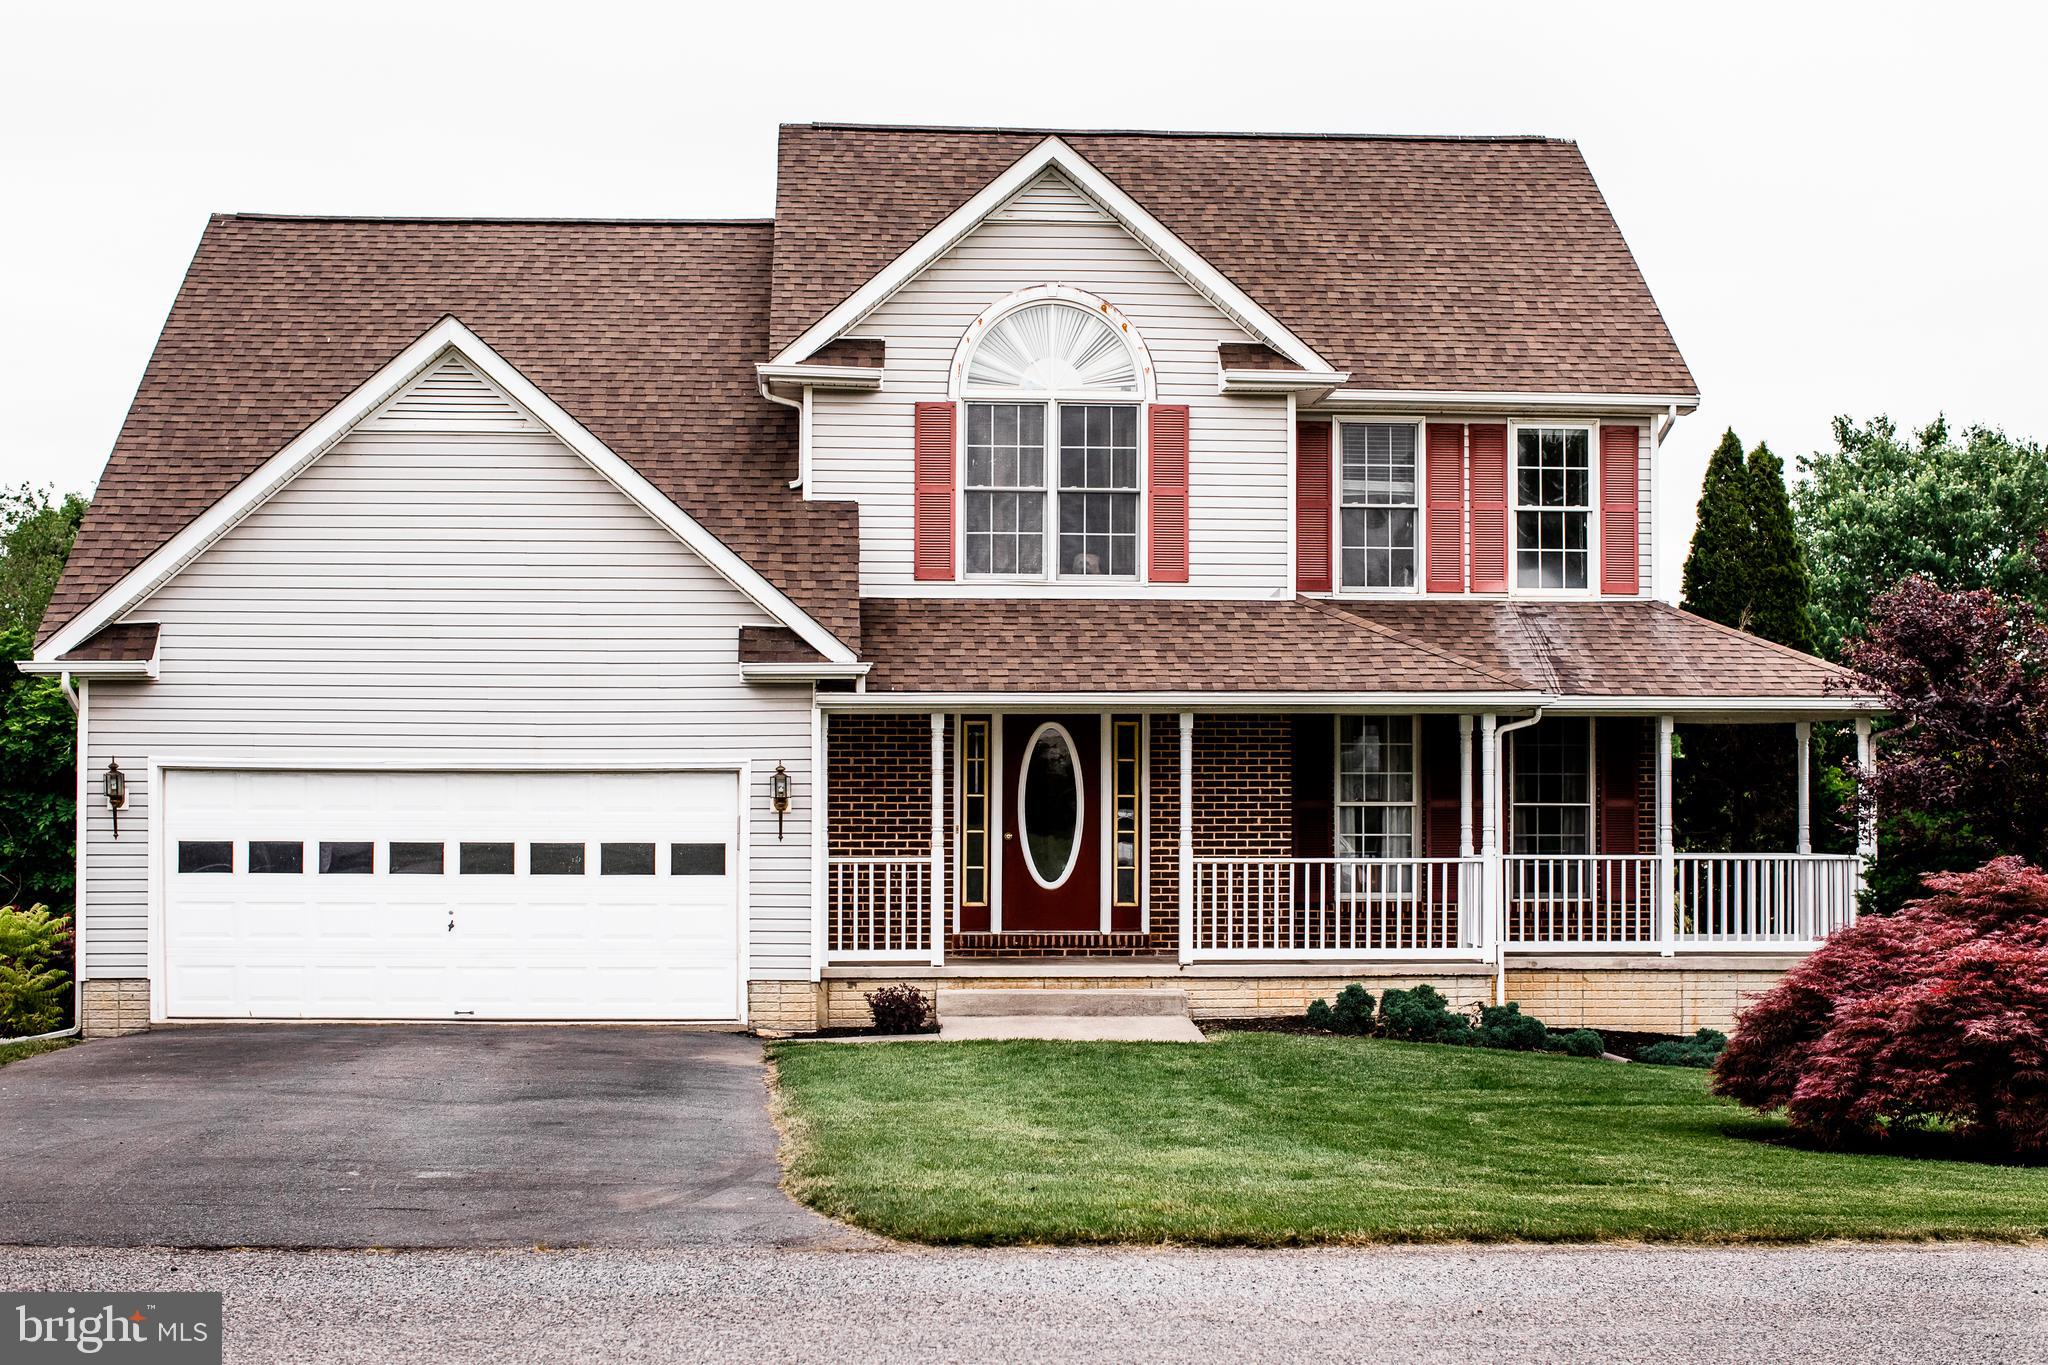 THIS VERY ATTRACTIVE 4 BEDROOM / 3.5 BATH COLONIAL WITH A FULL FRONT PORCH AND DOUBLE GARAGE IS ON 1